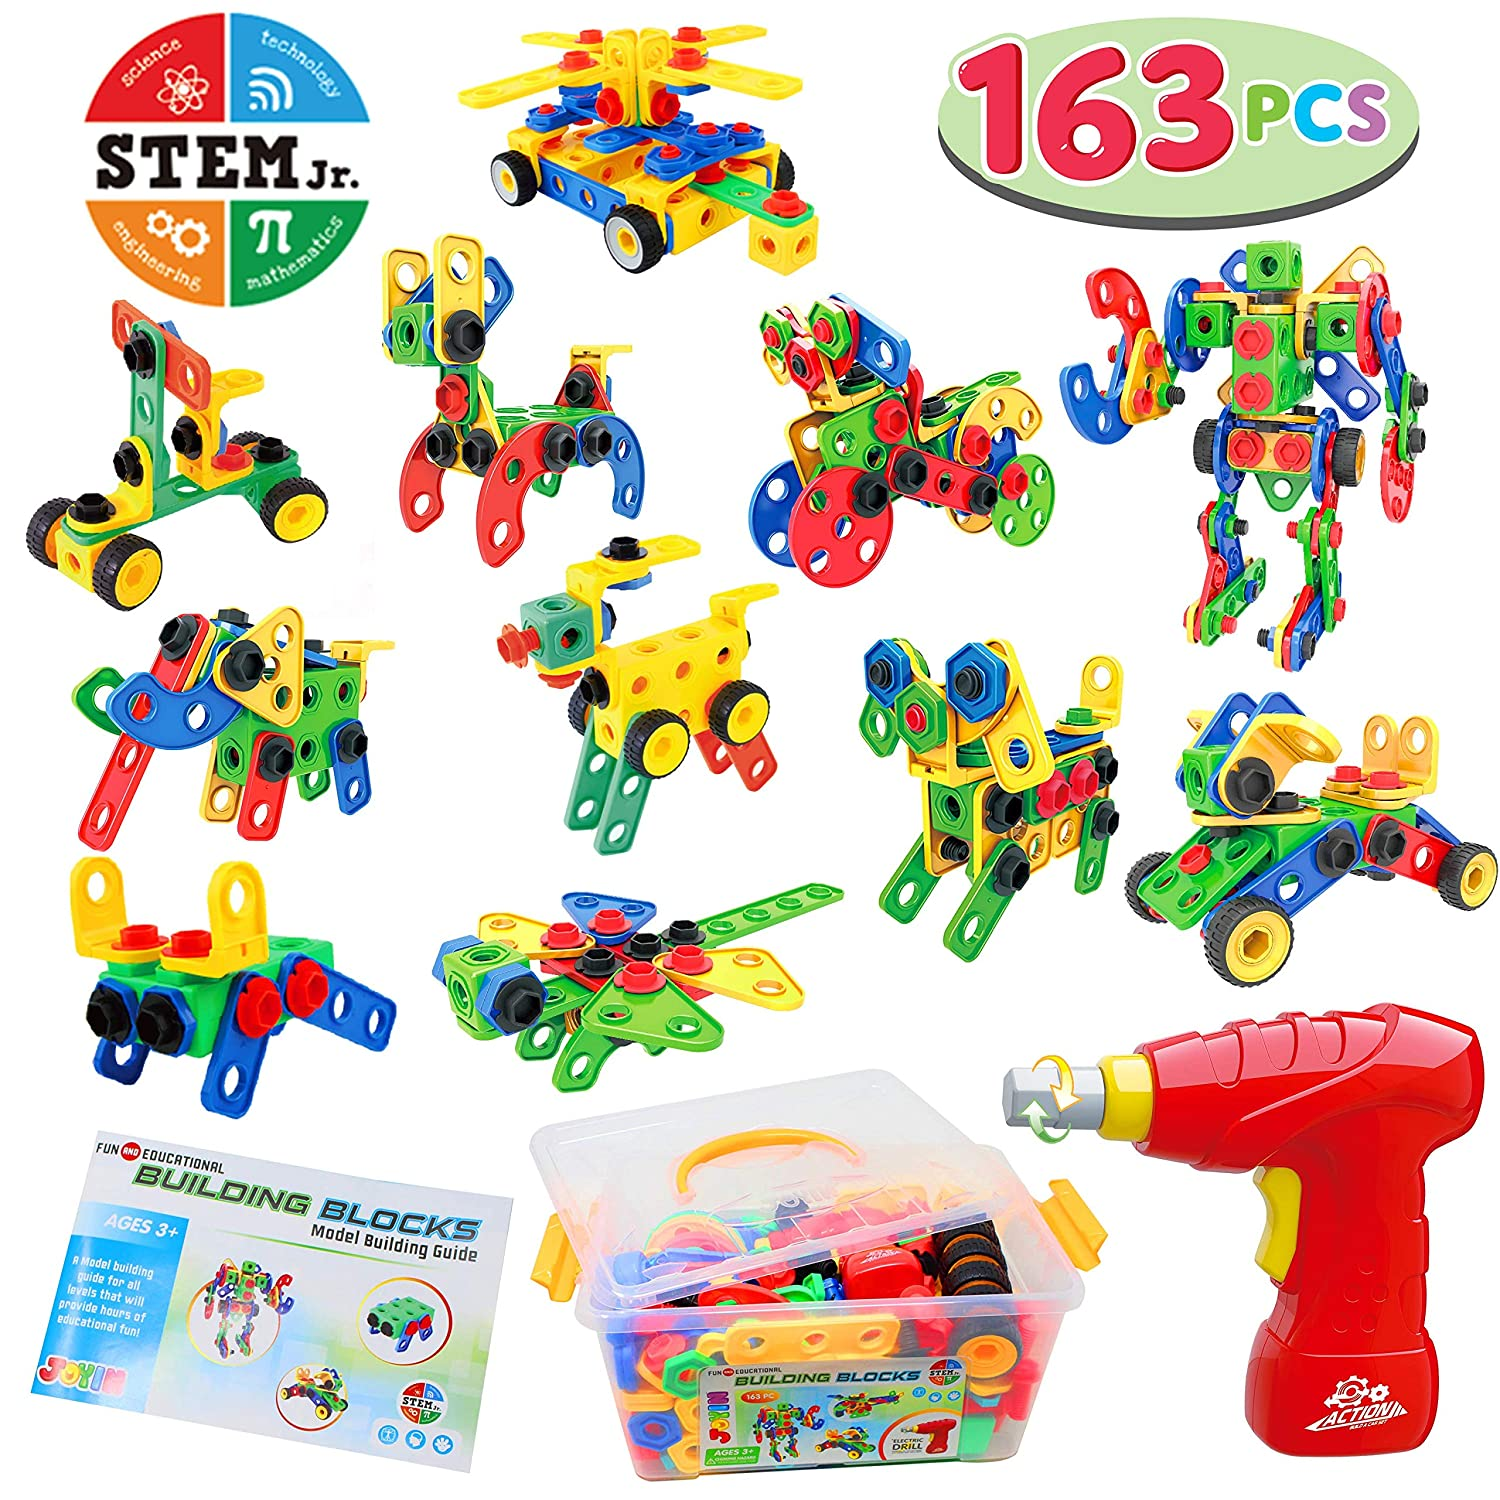 JOYIN 163 Pcs STEM Toys Kit with Electric Drill and Storage Box Set Educational Construction Engineering Building Block Creative Game Toy for Ages 3+ Year Old Boys & Girls